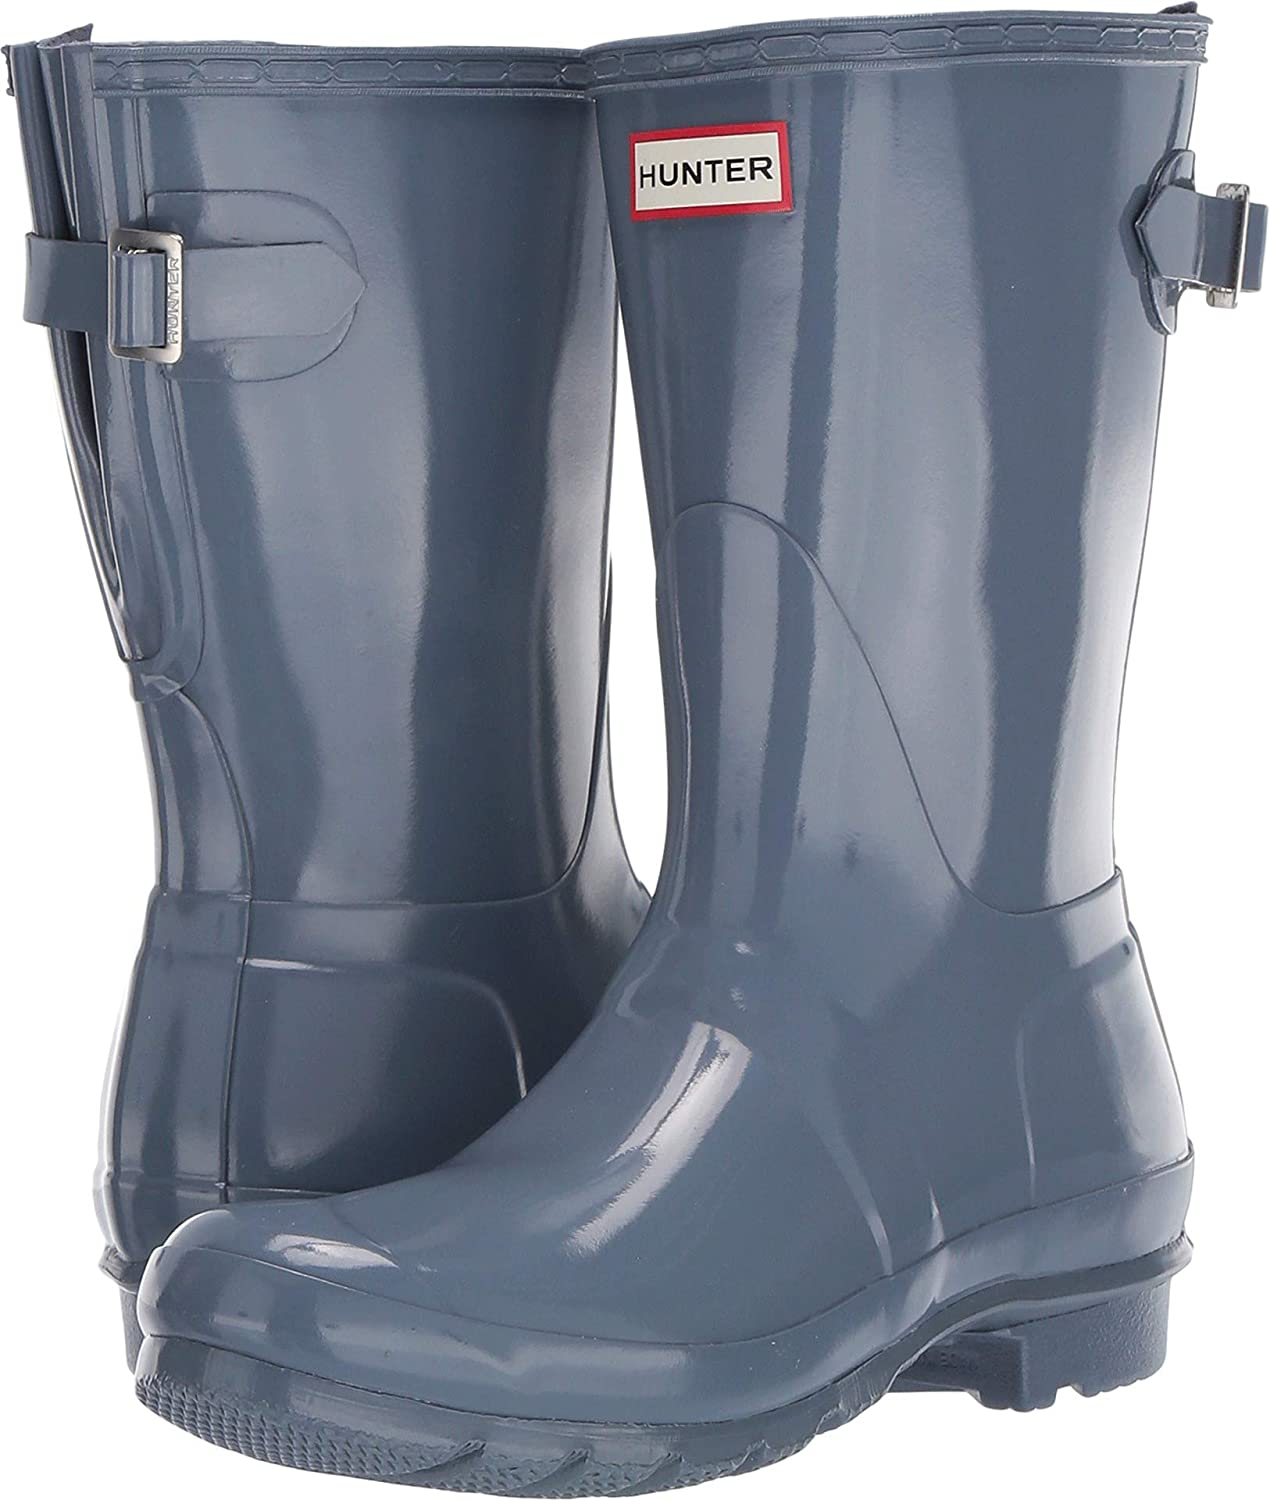 937413ba91f Hunter Boots Women's Original Back Adjustable Short Rain Boot ...